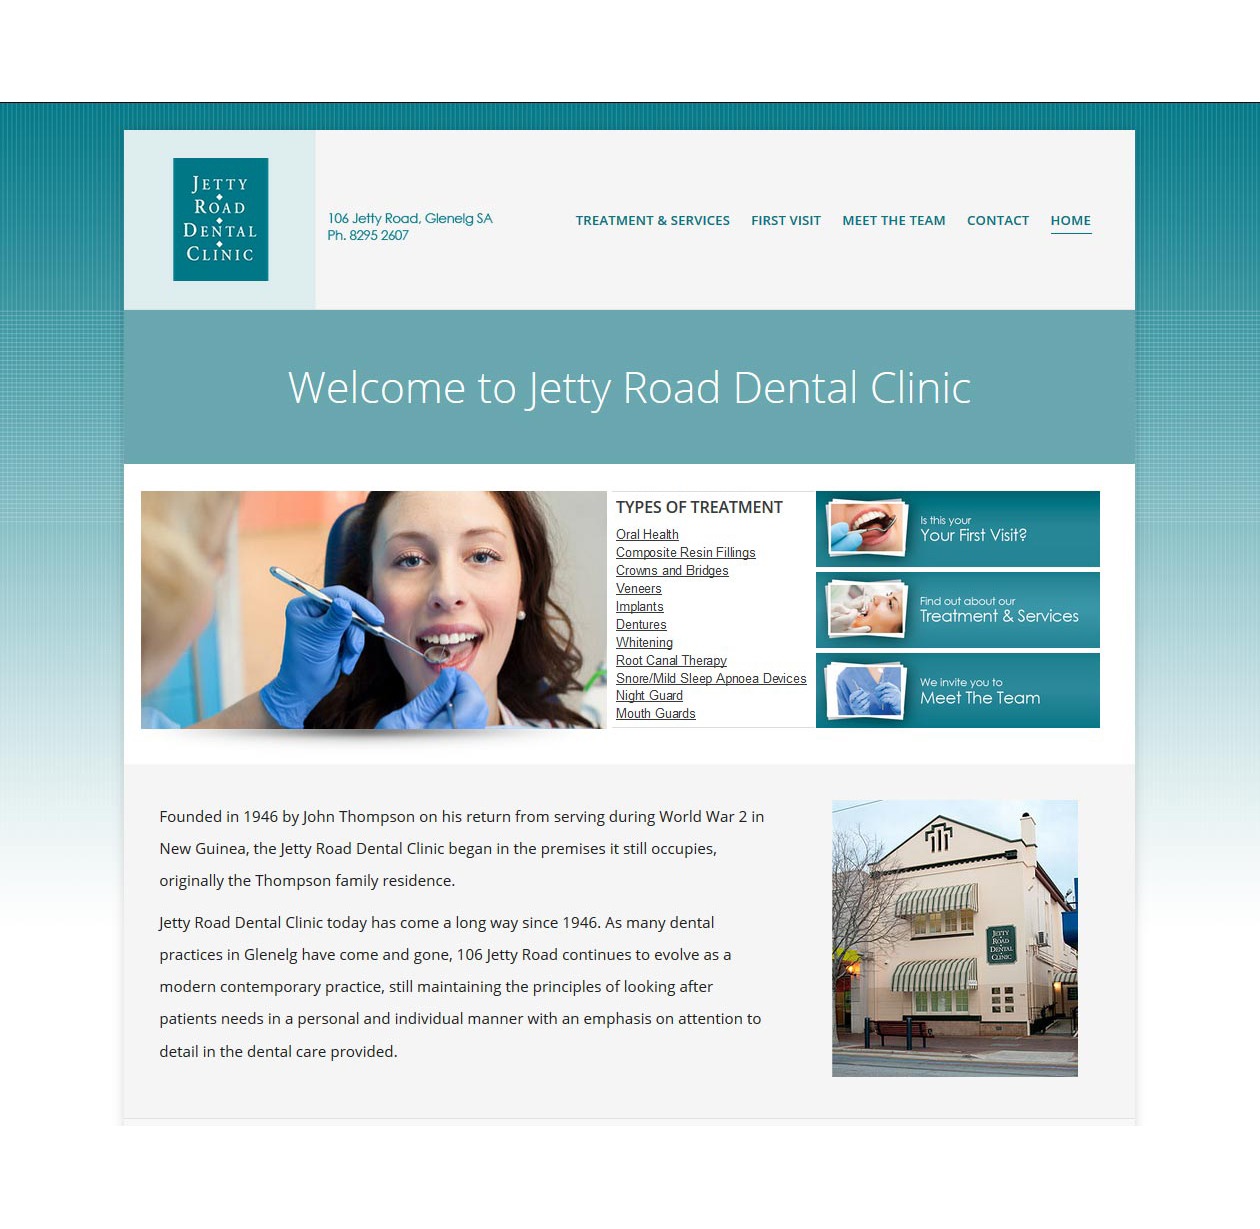 jetty-rd-dental-clinic-website